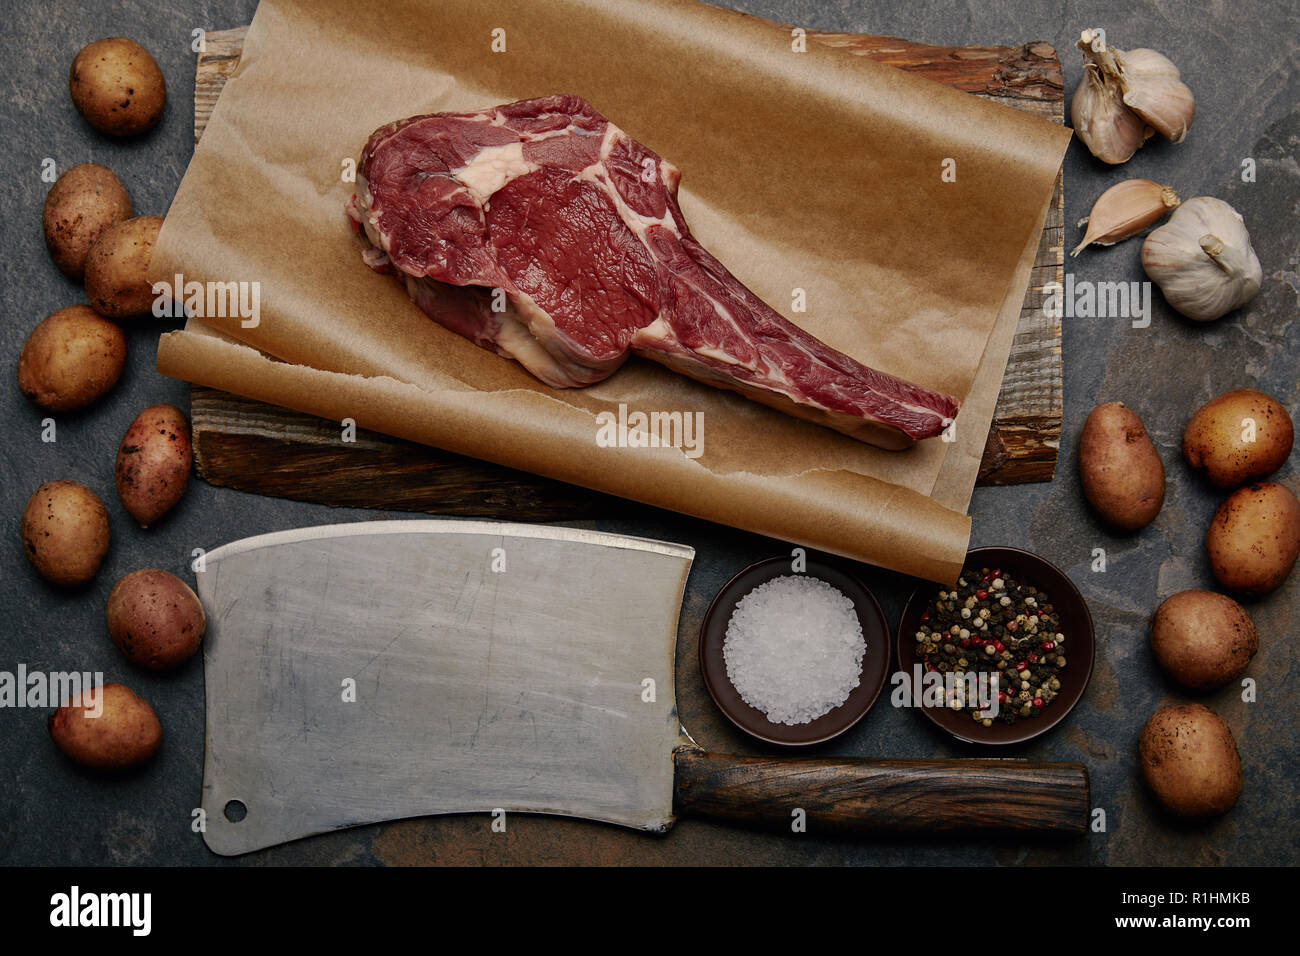 flat lay with raw rib eye steak on baking paper with butcher knife, spices, potatoes and garlic - Stock Image